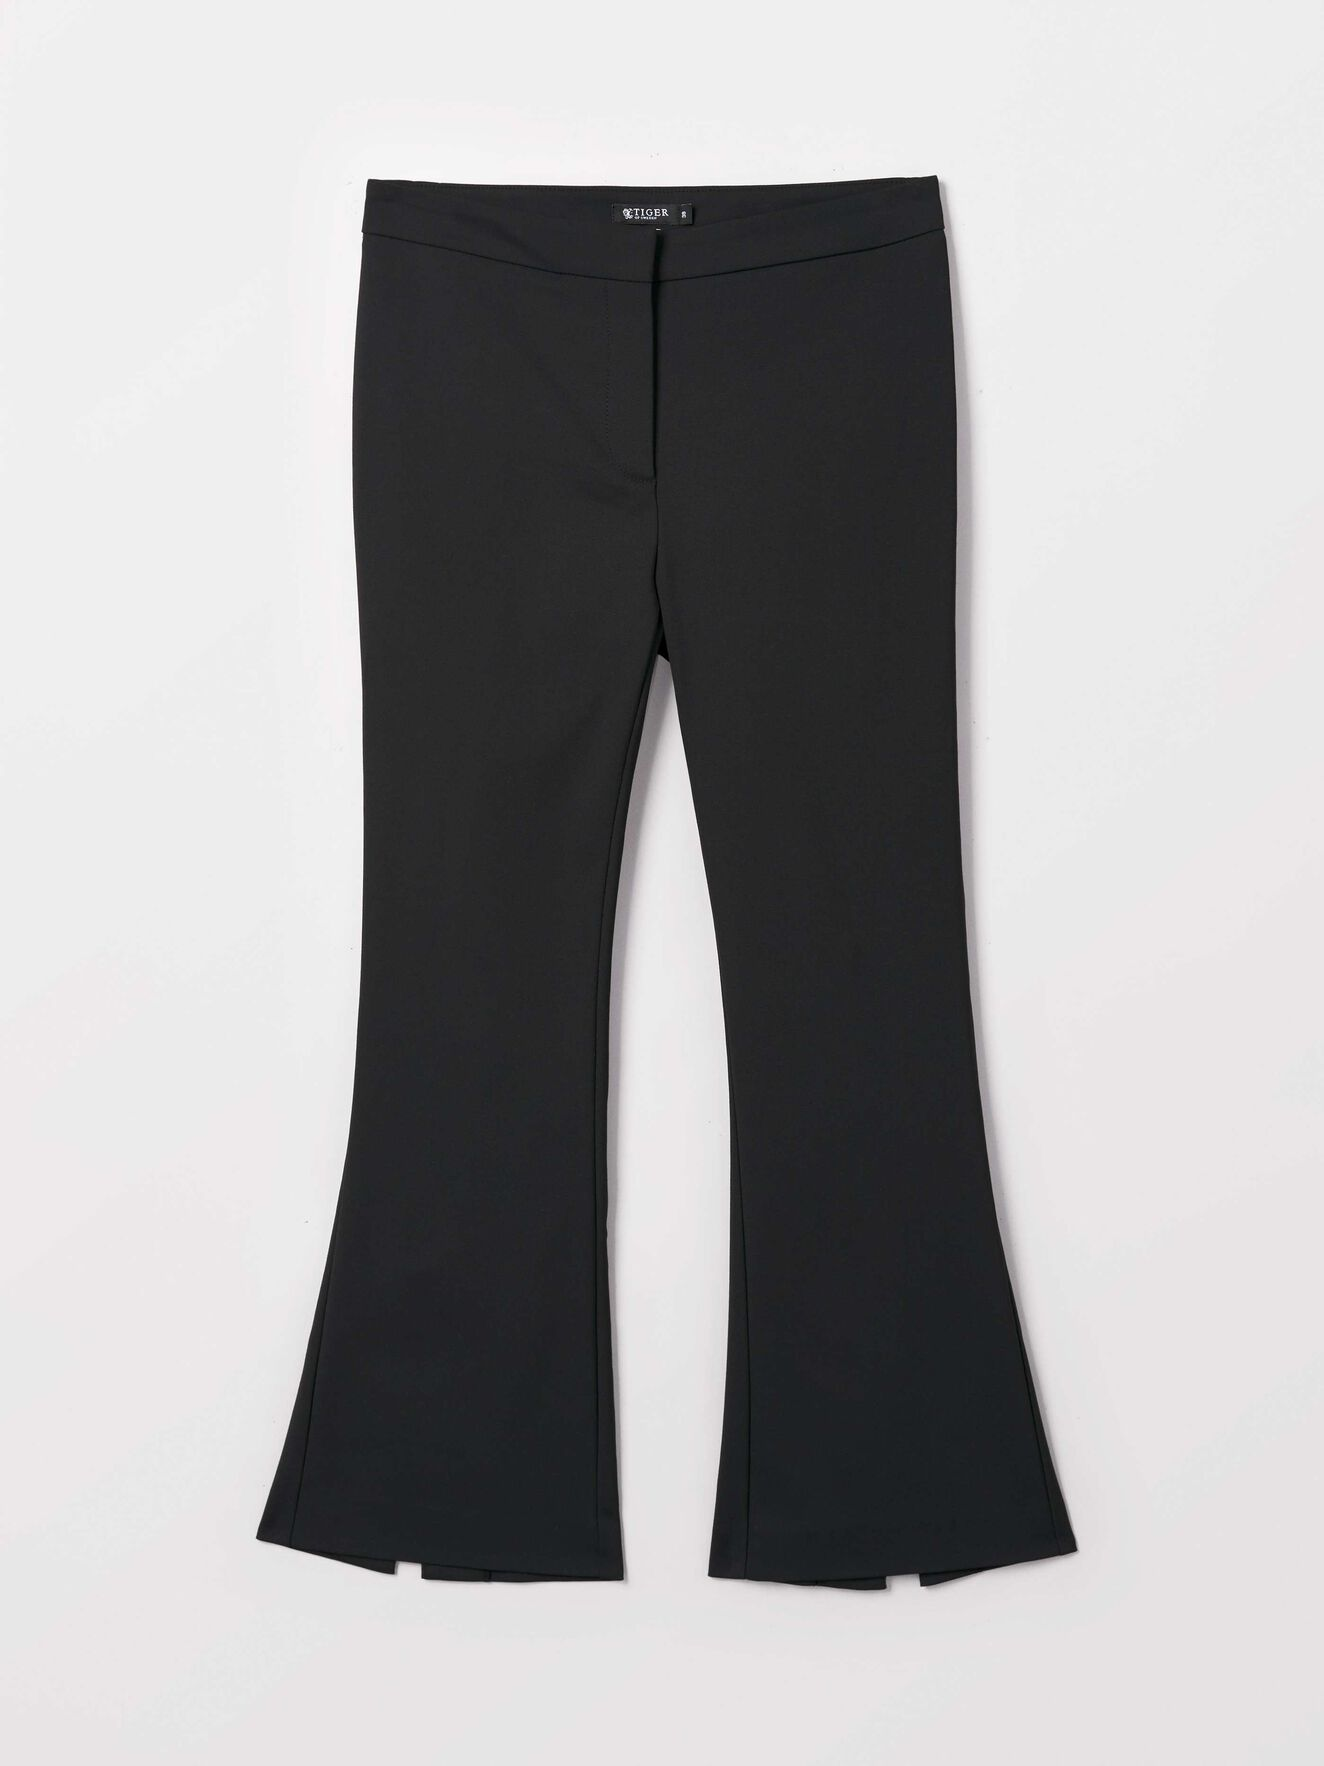 Noora Trousers in Midnight Black from Tiger of Sweden